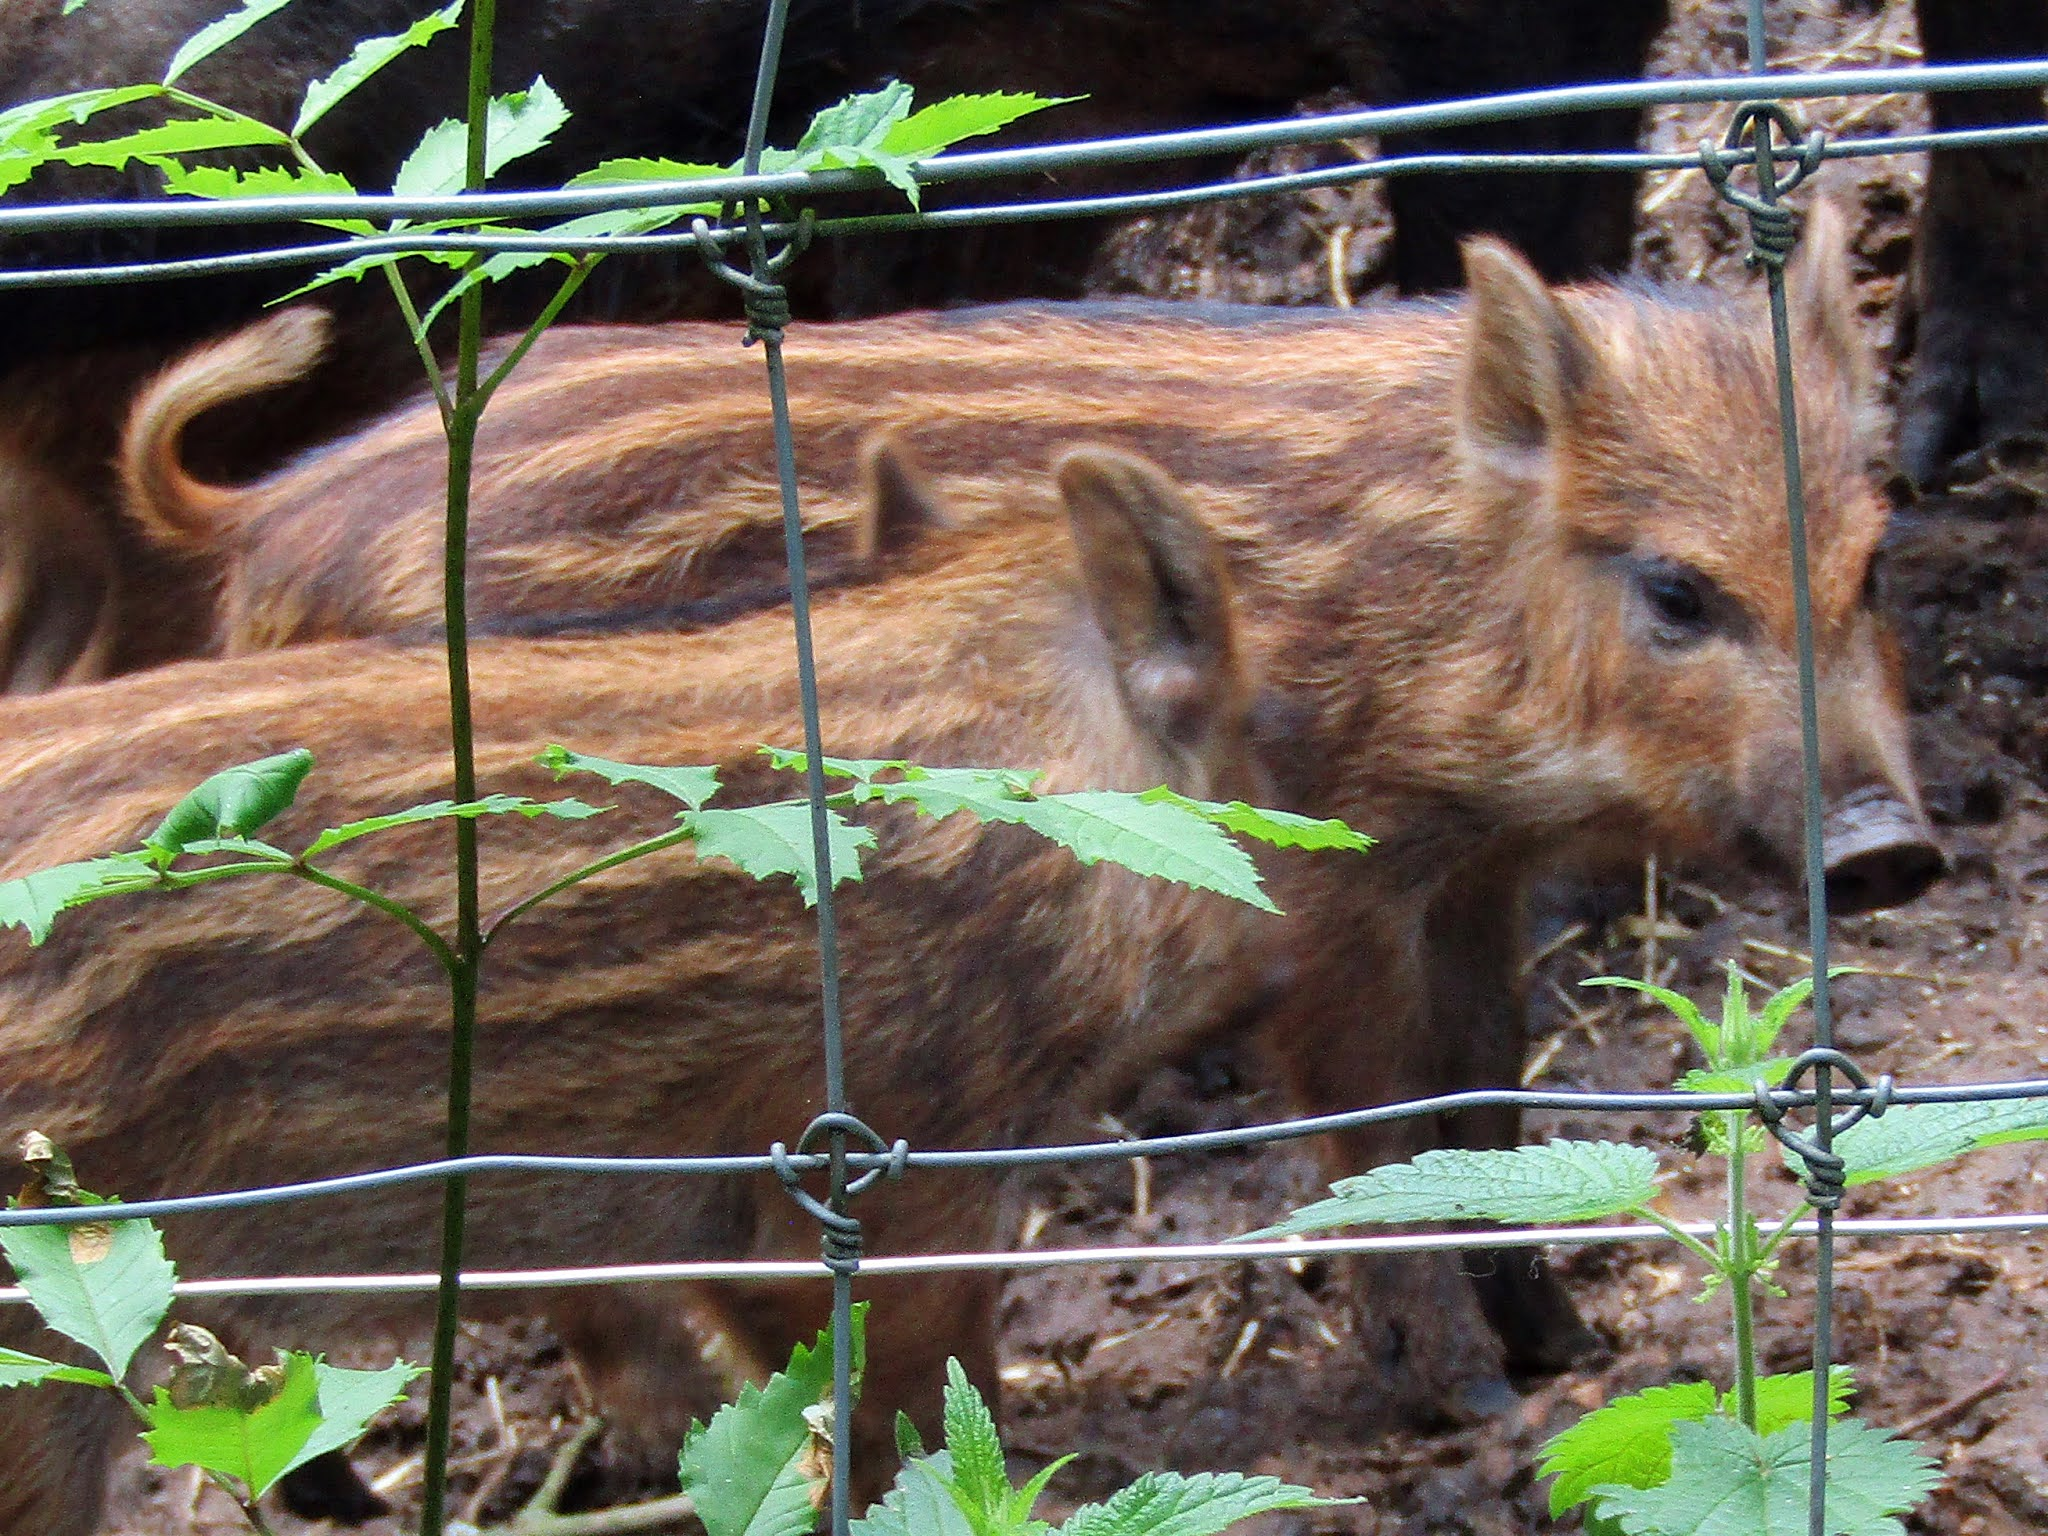 A photo of wild boar piglets at Whipsnade Zoo.